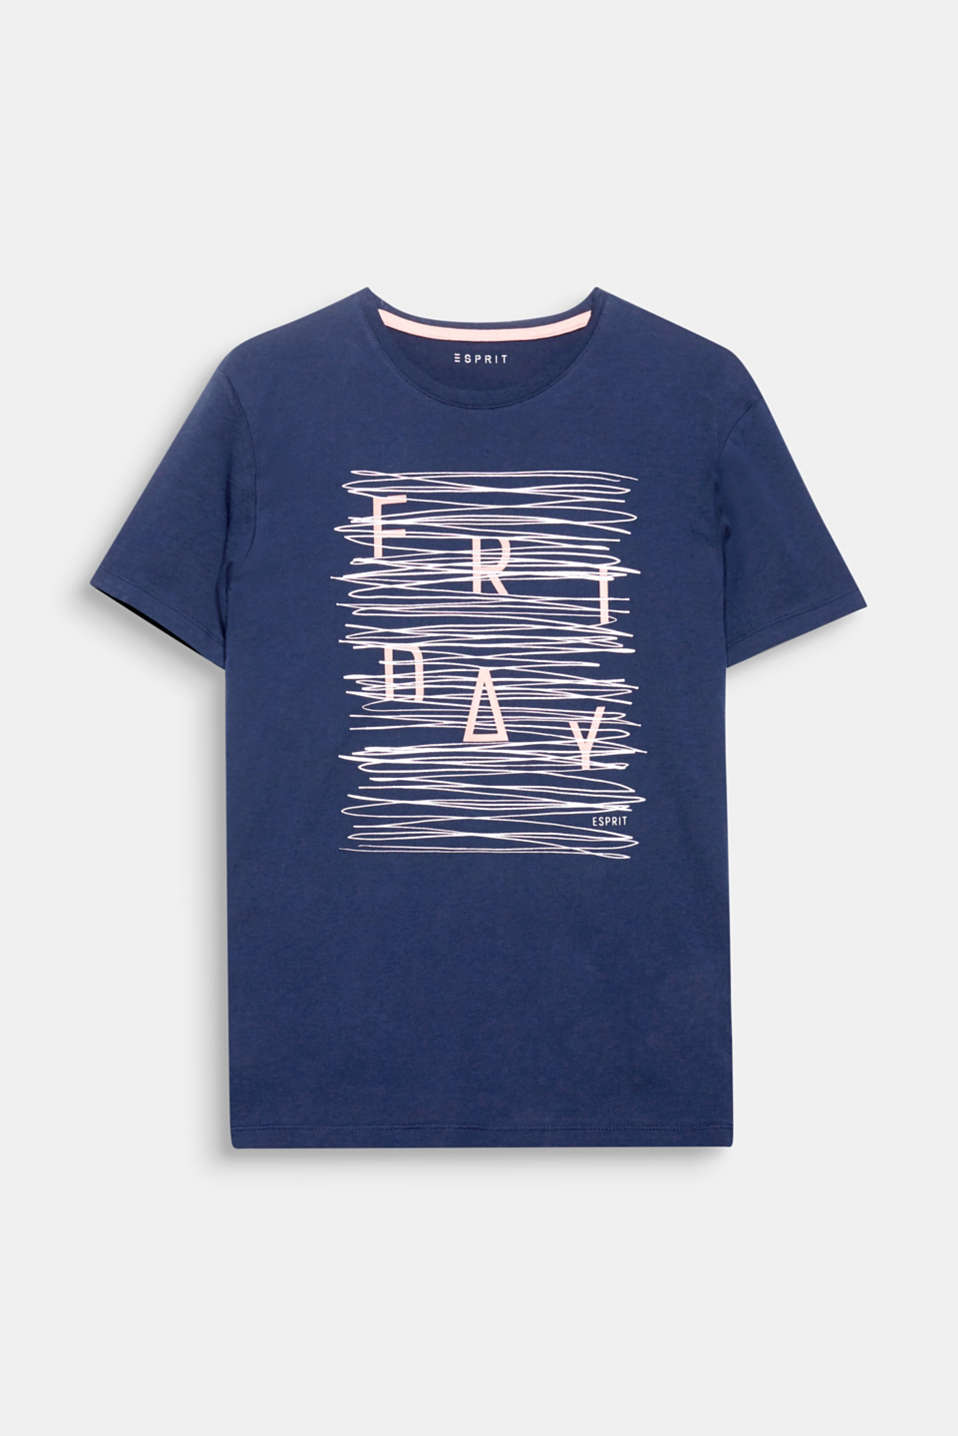 One print, one statement – with this T-shirt, you can wear Friday on your chest.